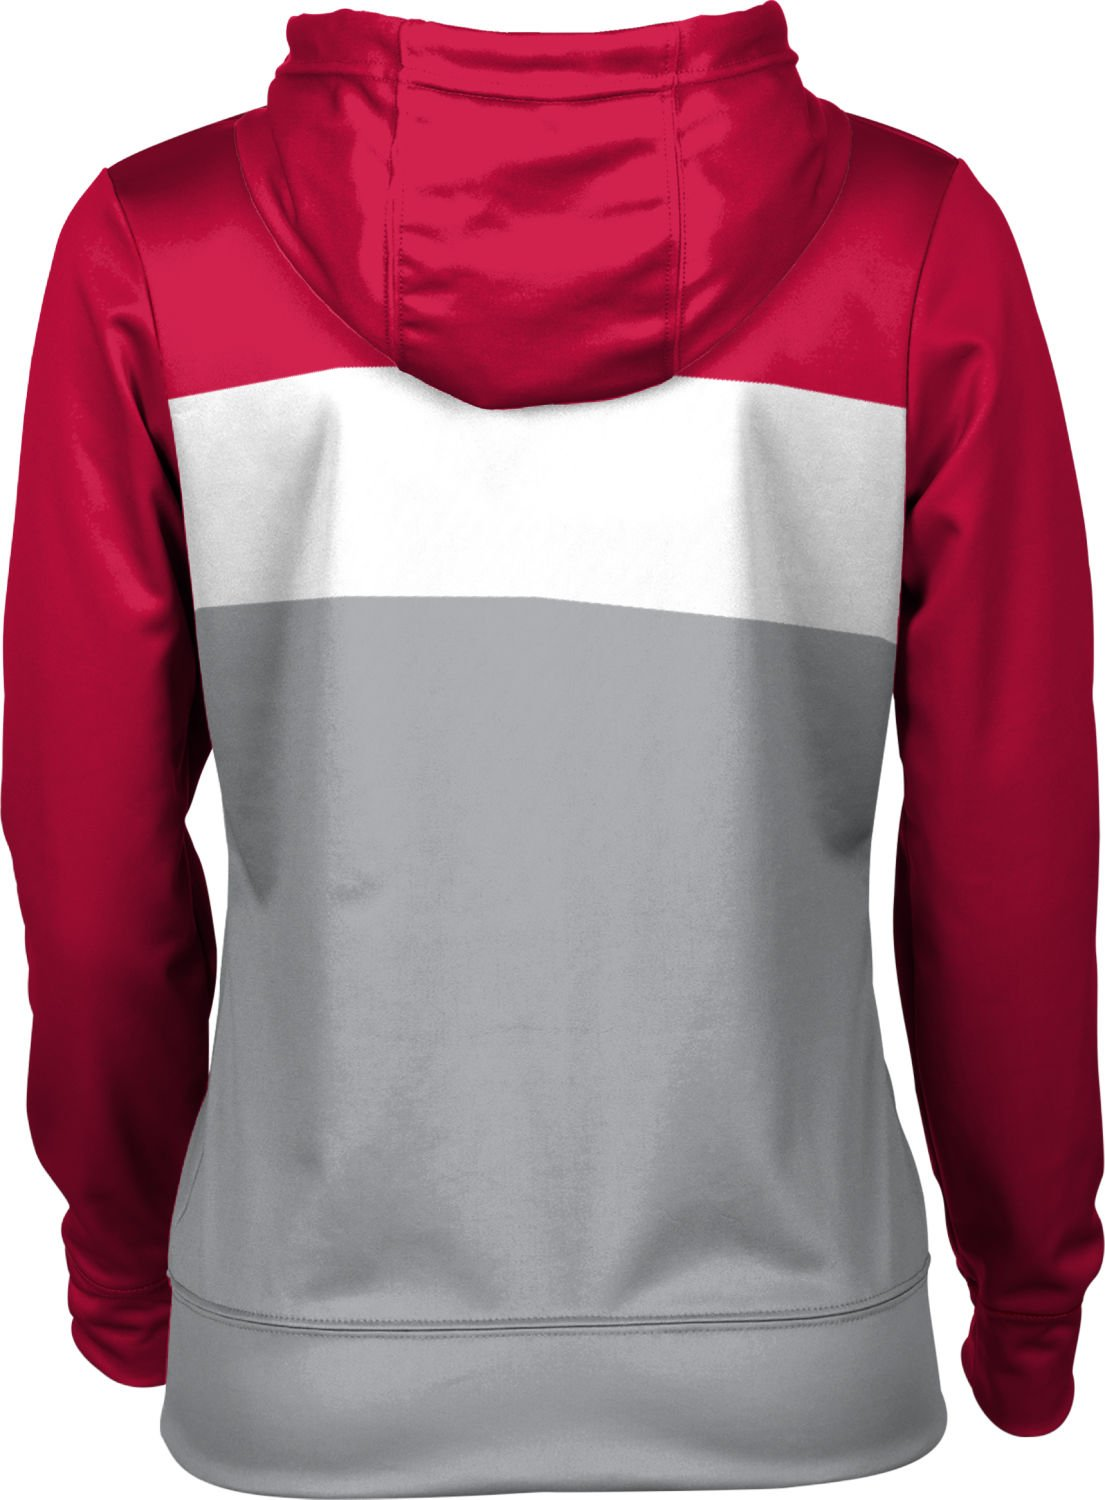 ProSphere Austin Peay State University Girls' Pullover Hoodie - Prime FD371 by ProSphere (Image #2)